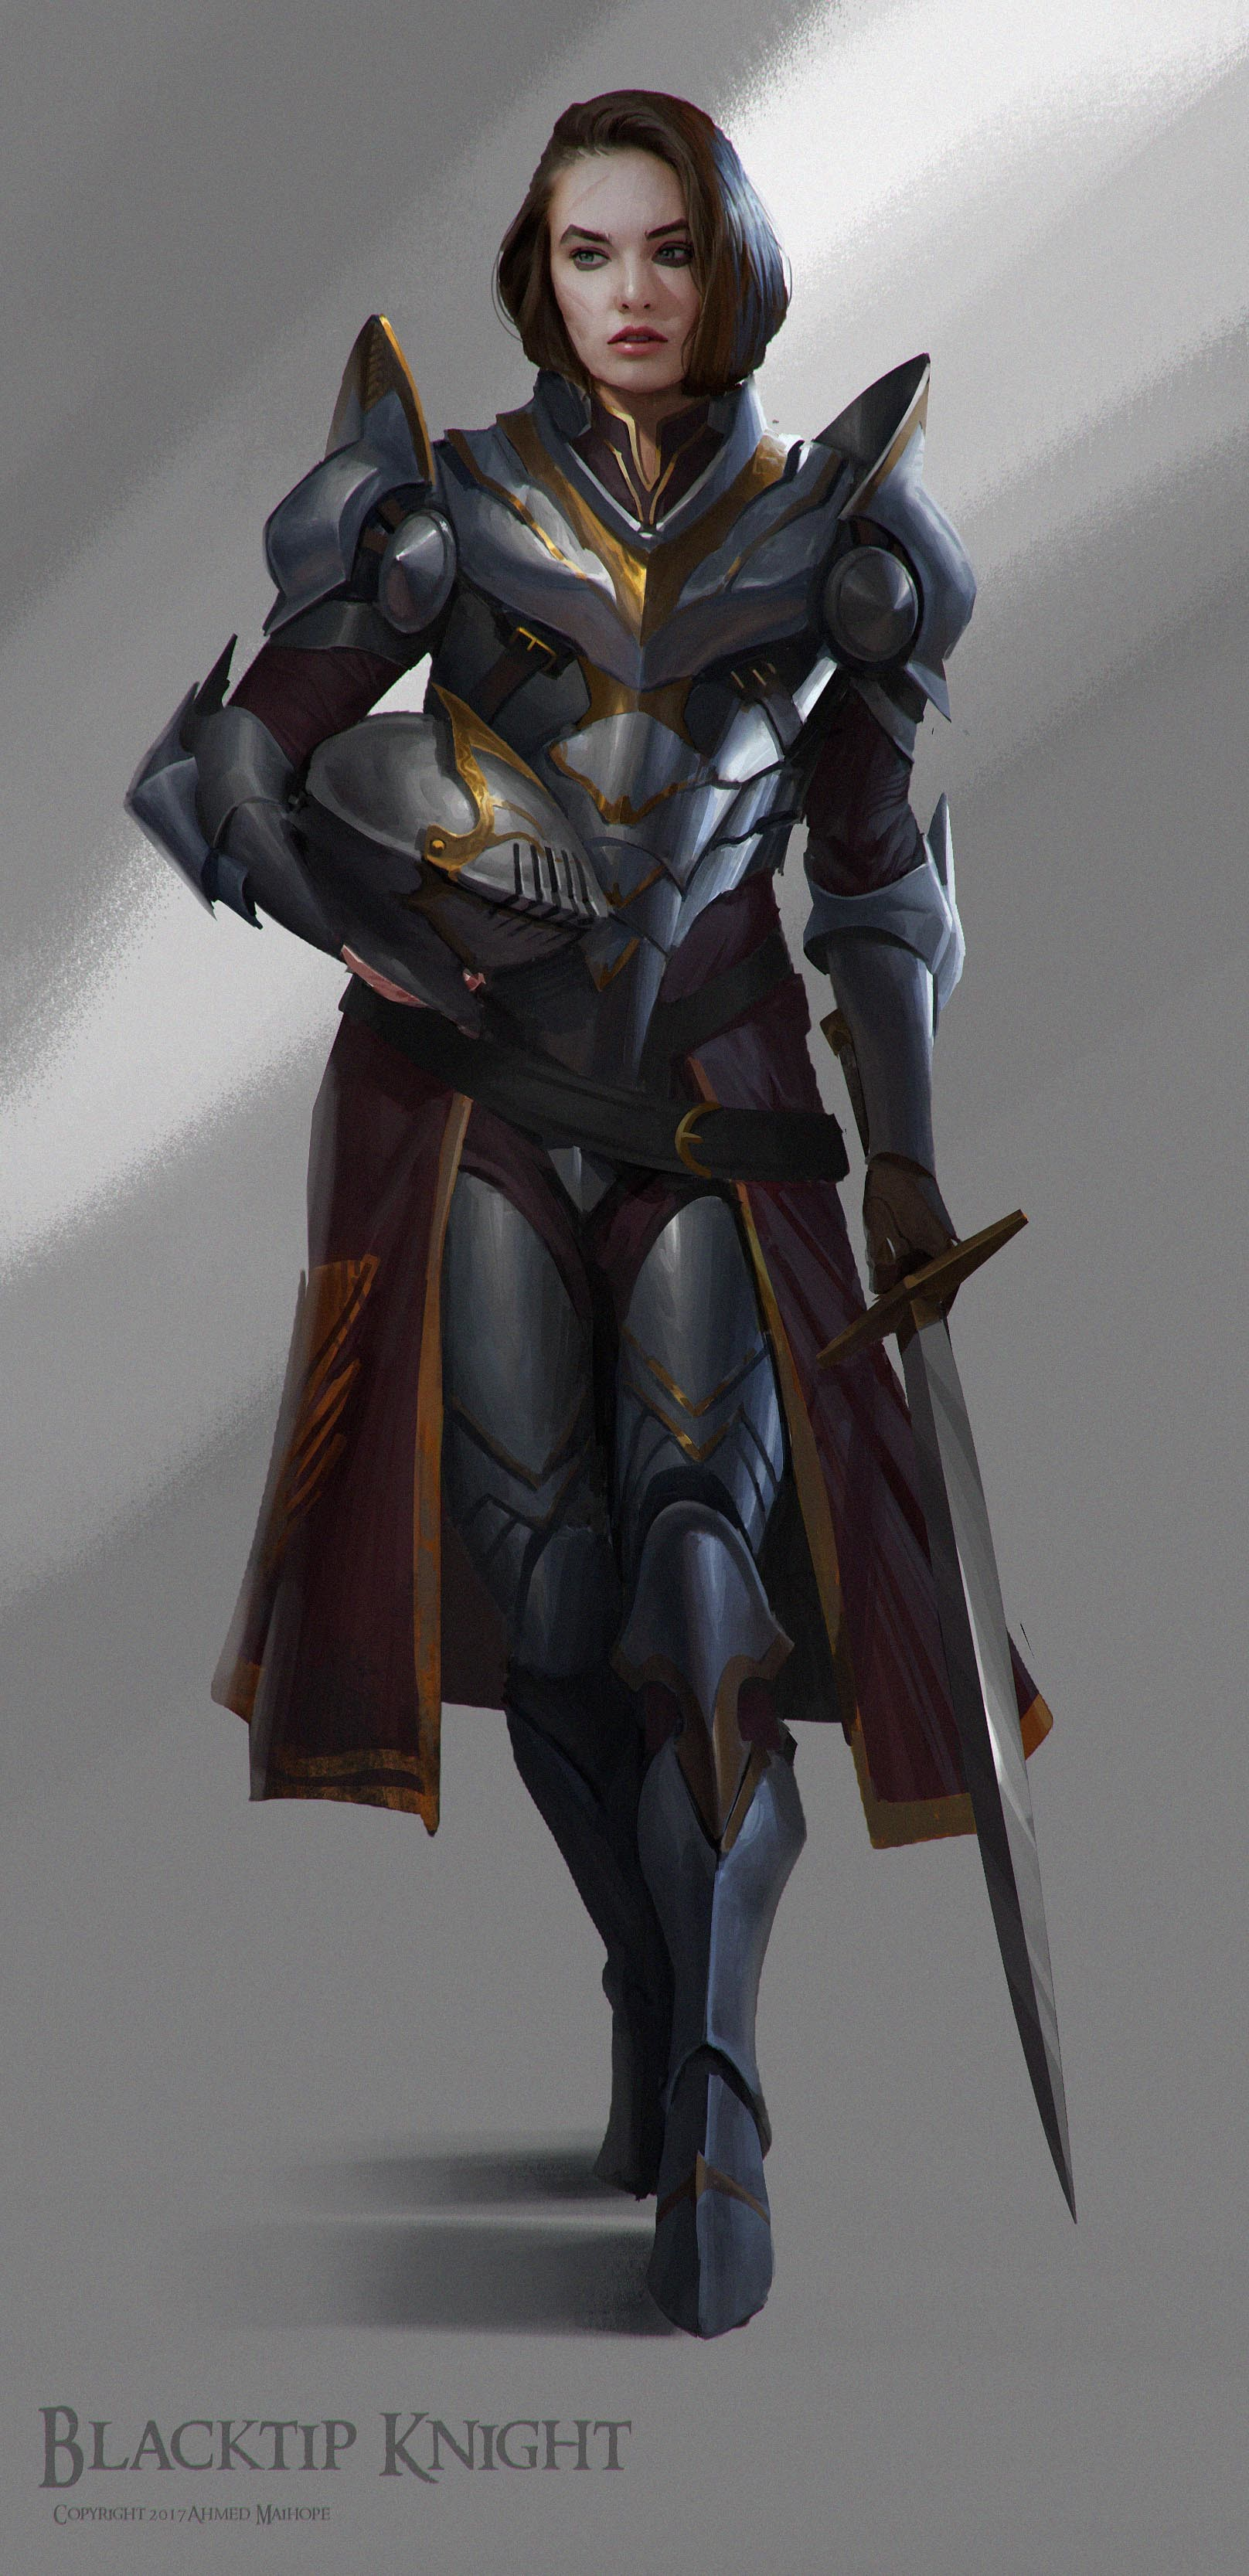 Blacktip Knight by Ahmed Maihope